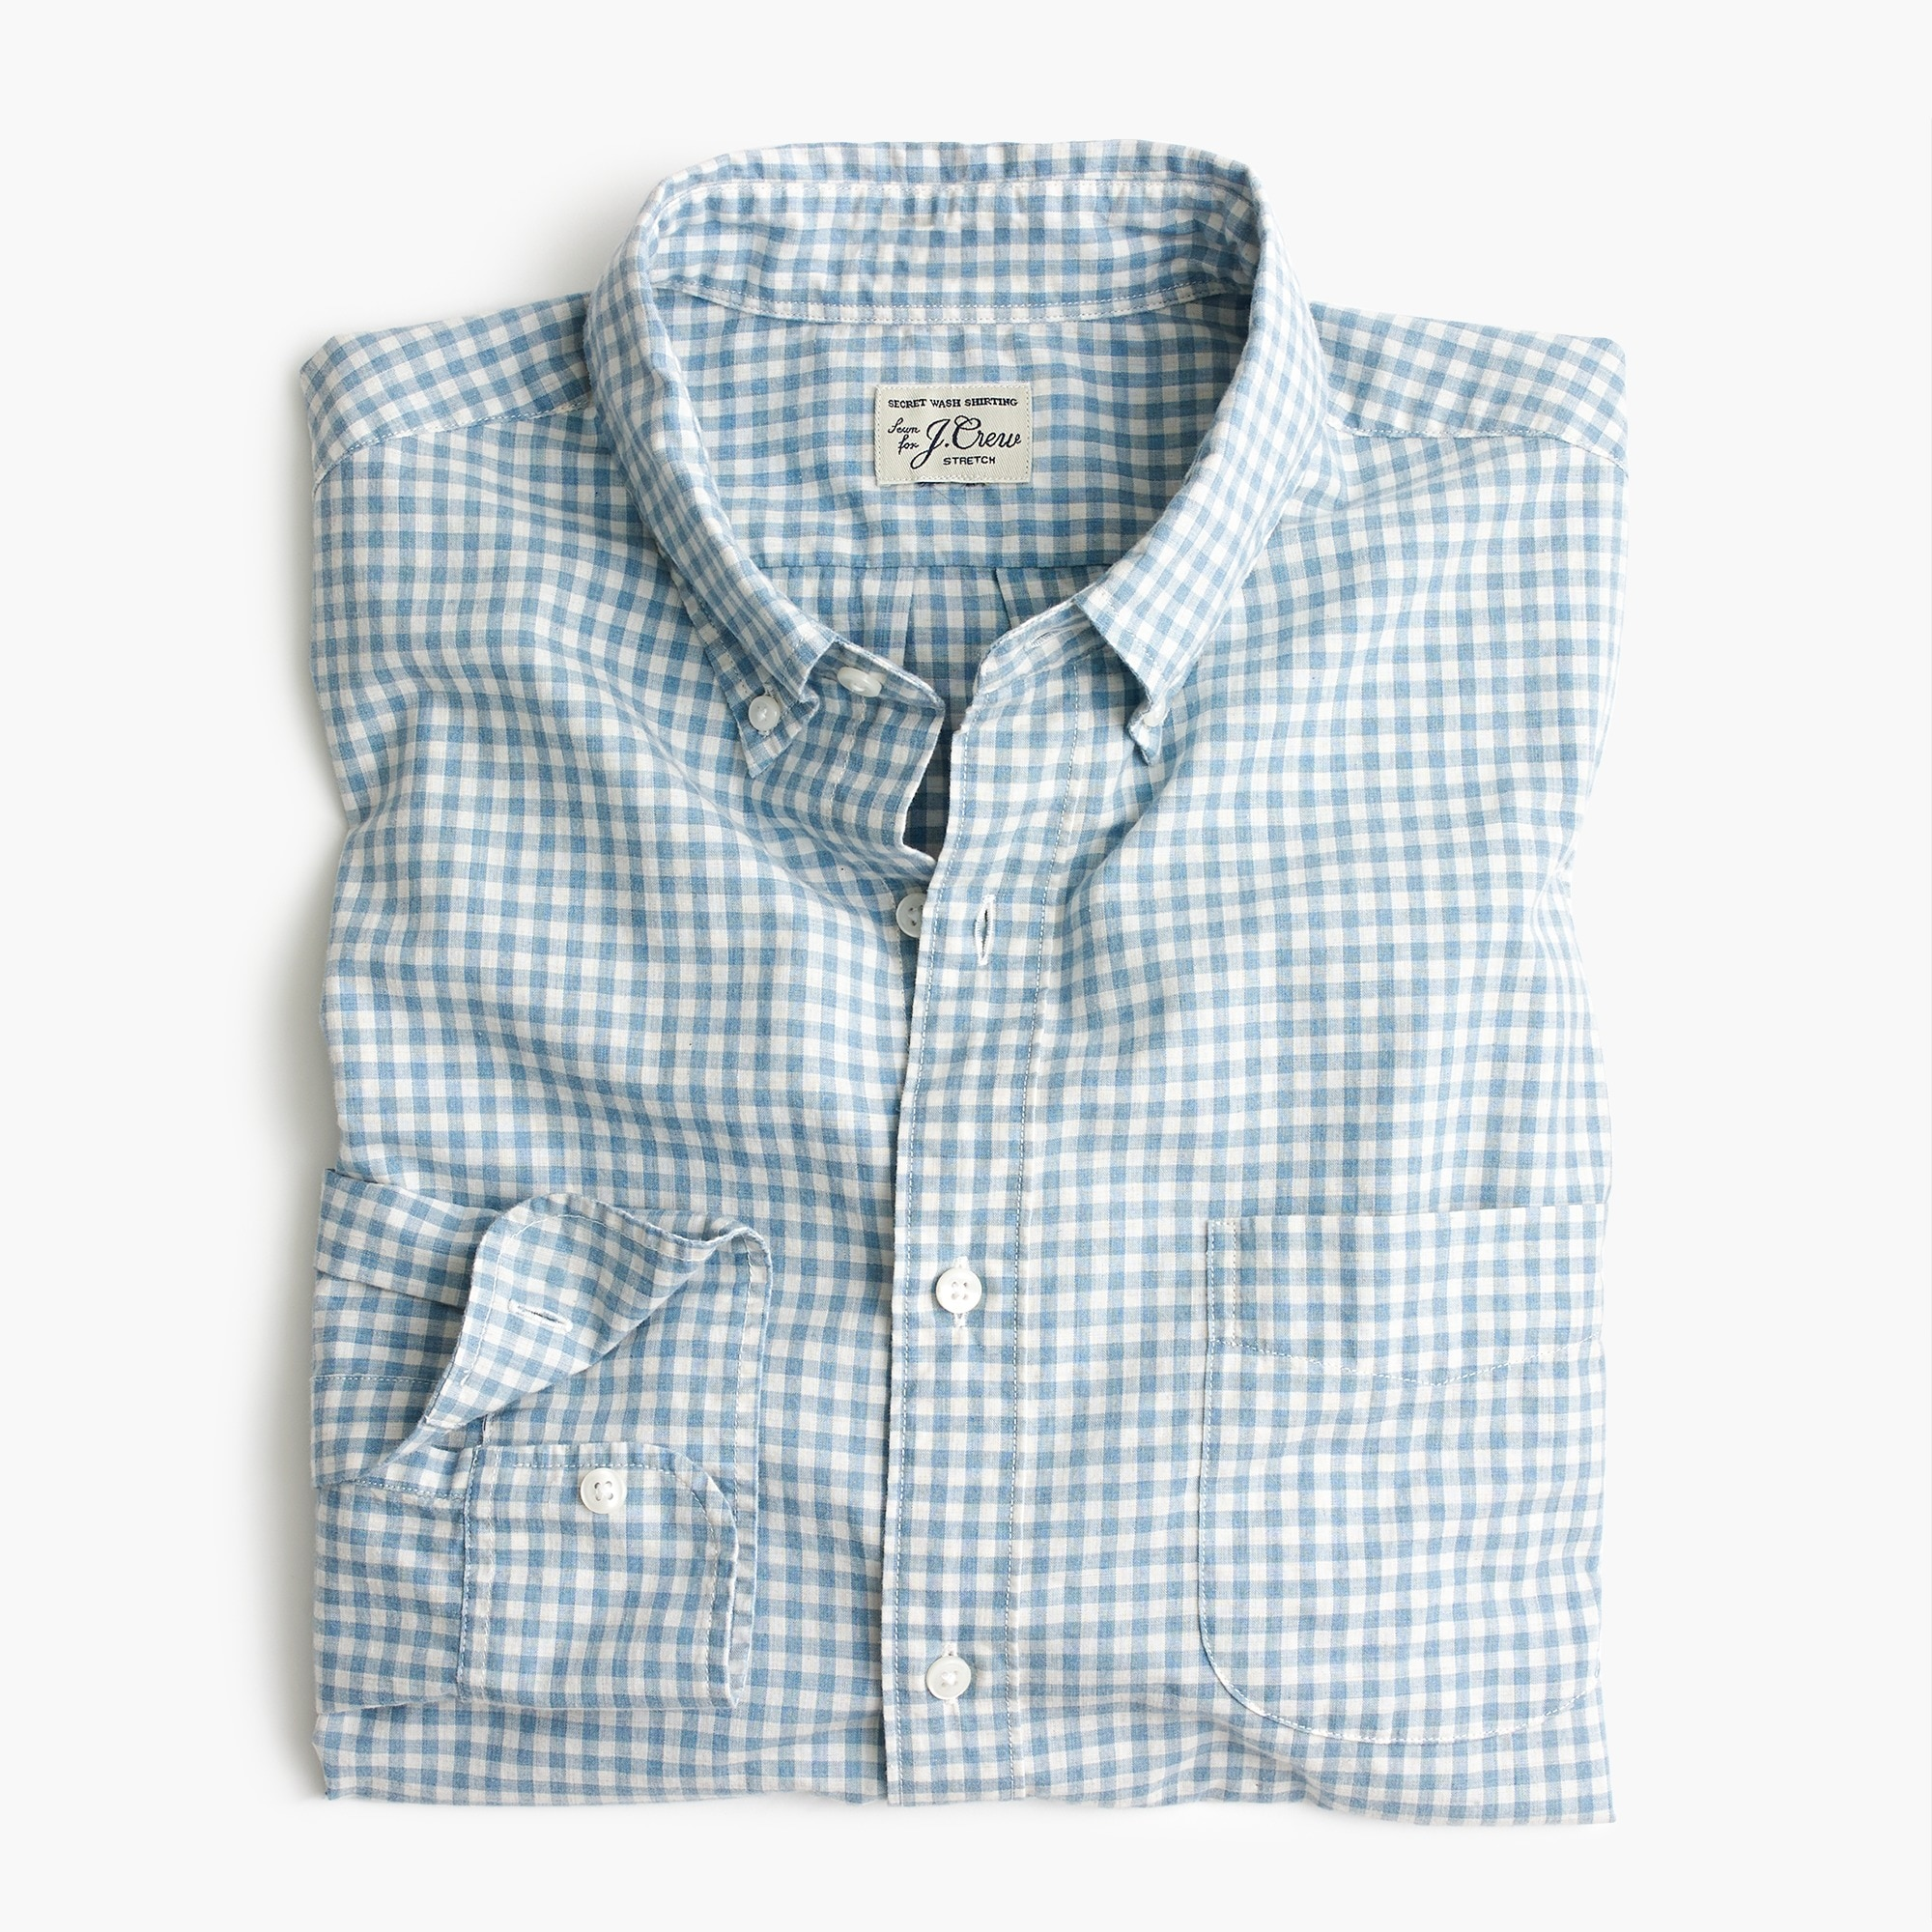 Image 1 for Stretch Secret Wash shirt in blue heather poplin gingham